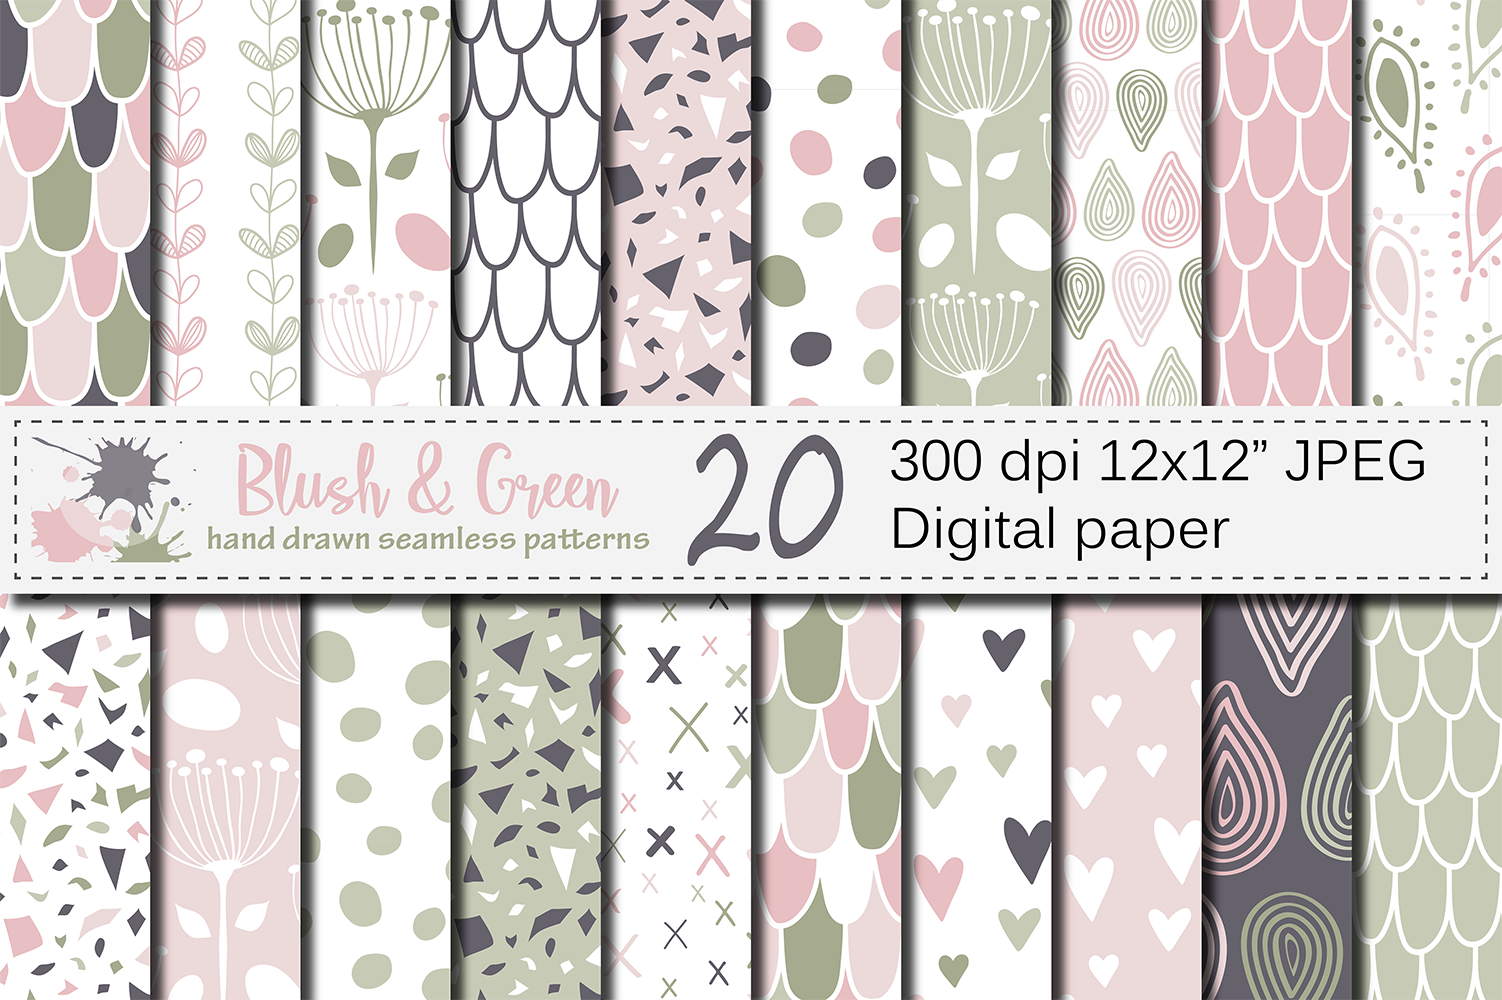 Blush Pink and Green Seamless Digital Paper Graphic Patterns By VR Digital Design